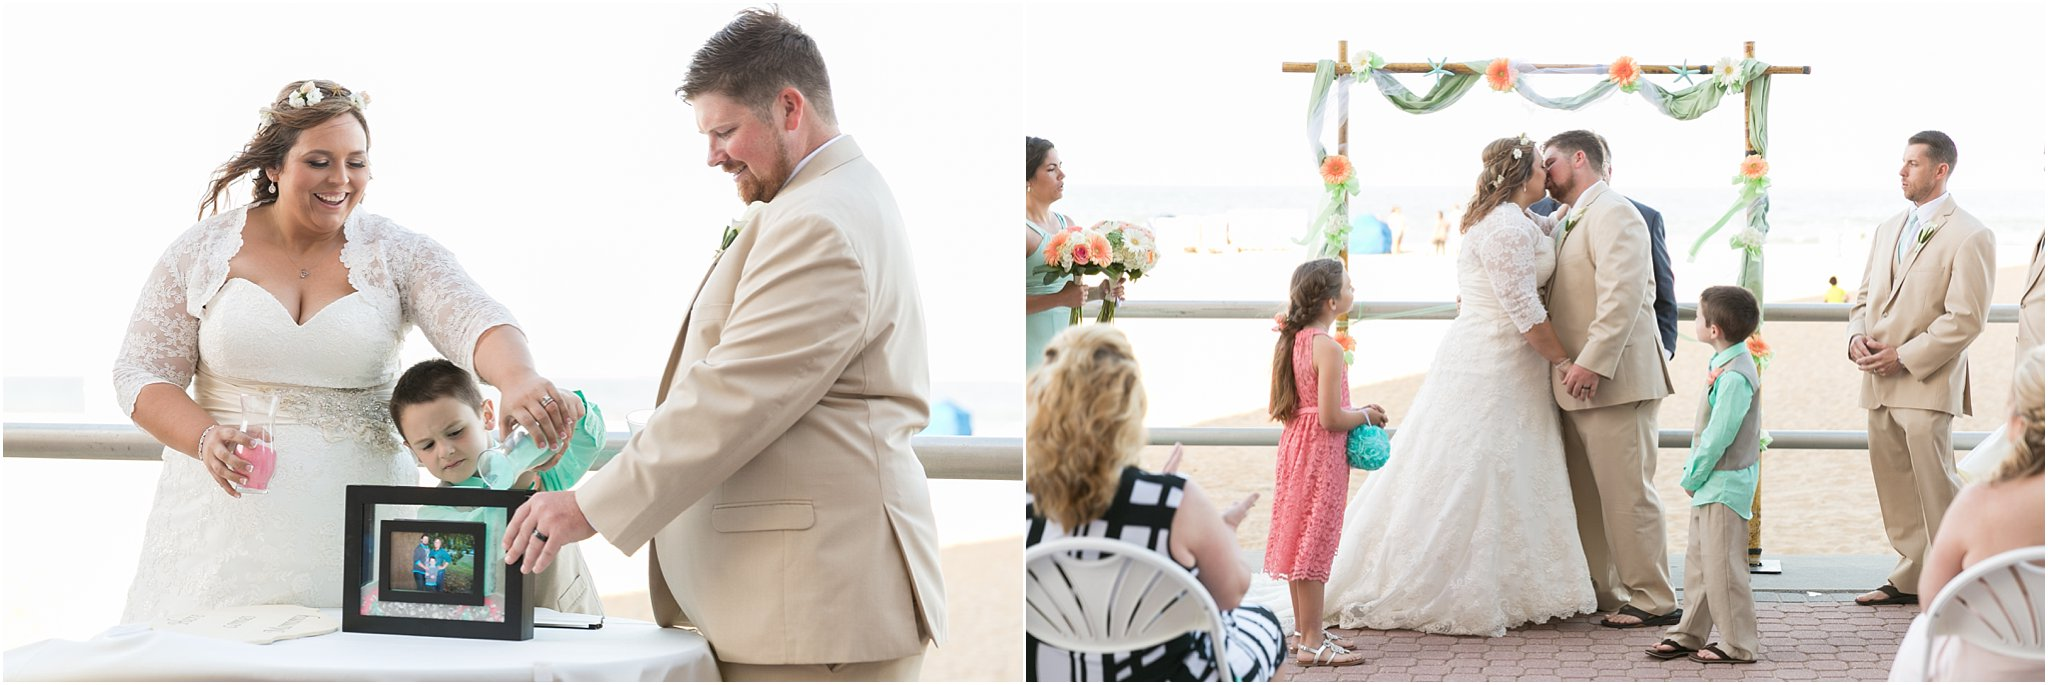 jessica_ryan_photography_virginia_beach_wedding_the_wyndham_oceanfront_beach_wedding_0871